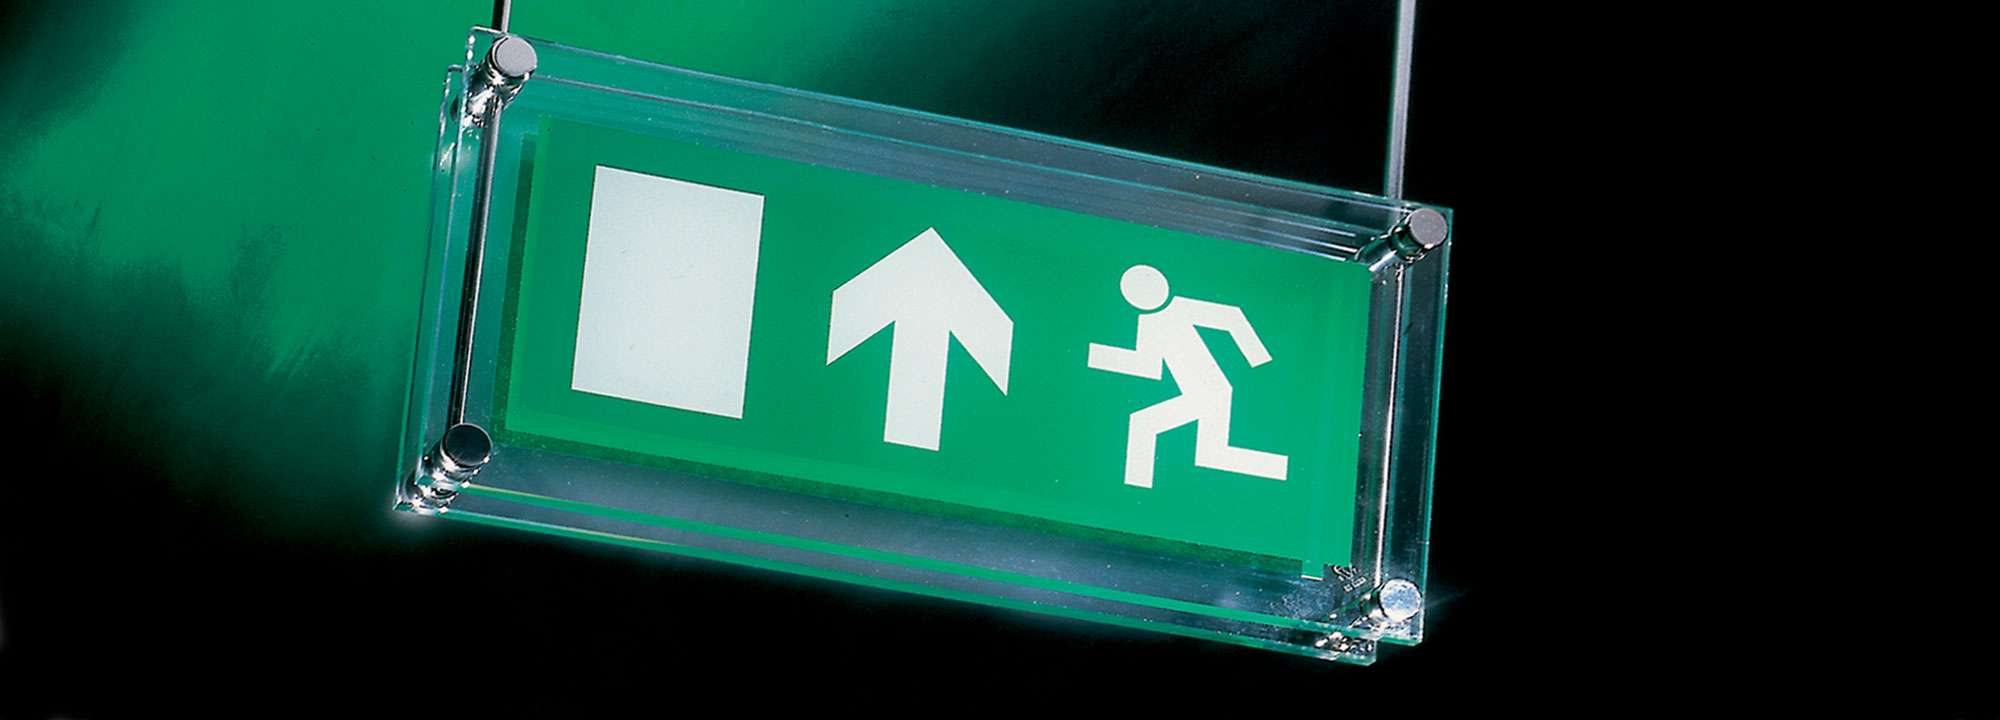 Fire Exit Signs Standard Amp Custom Made Shopkit Group Uk